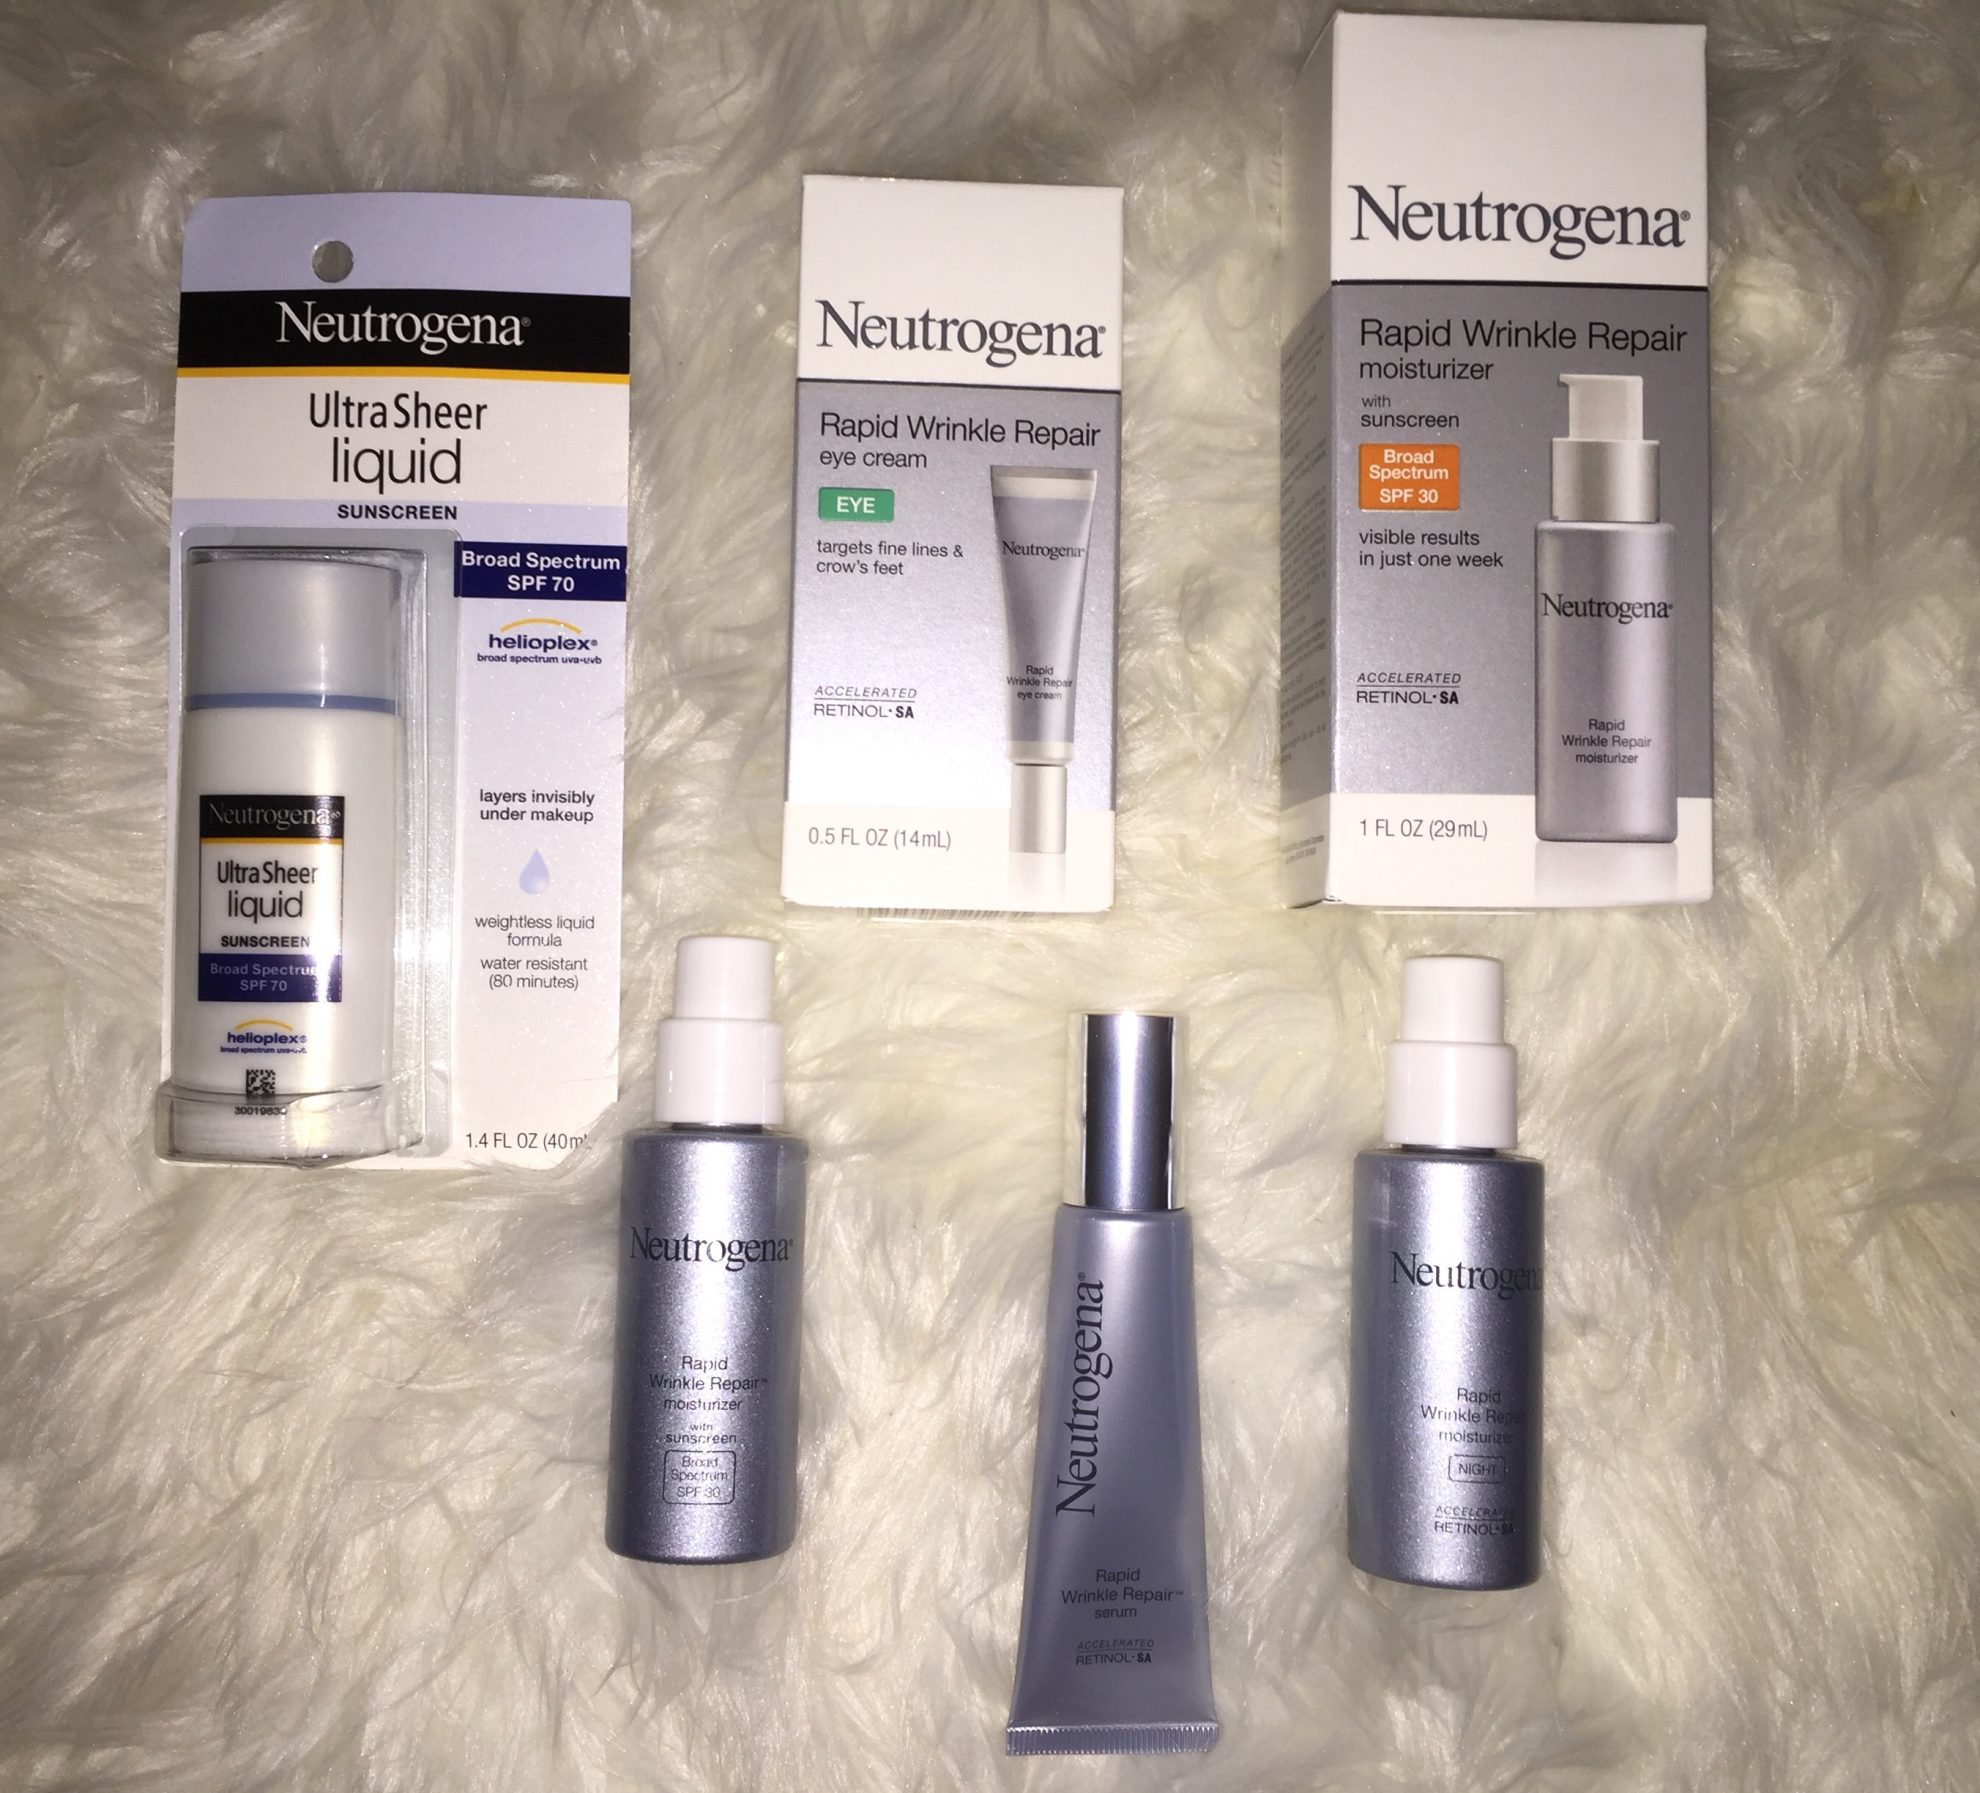 Neutrogena Rapid Wrinkle Repair Will Reduce Fine Lines in Seven Days & a Giveaway